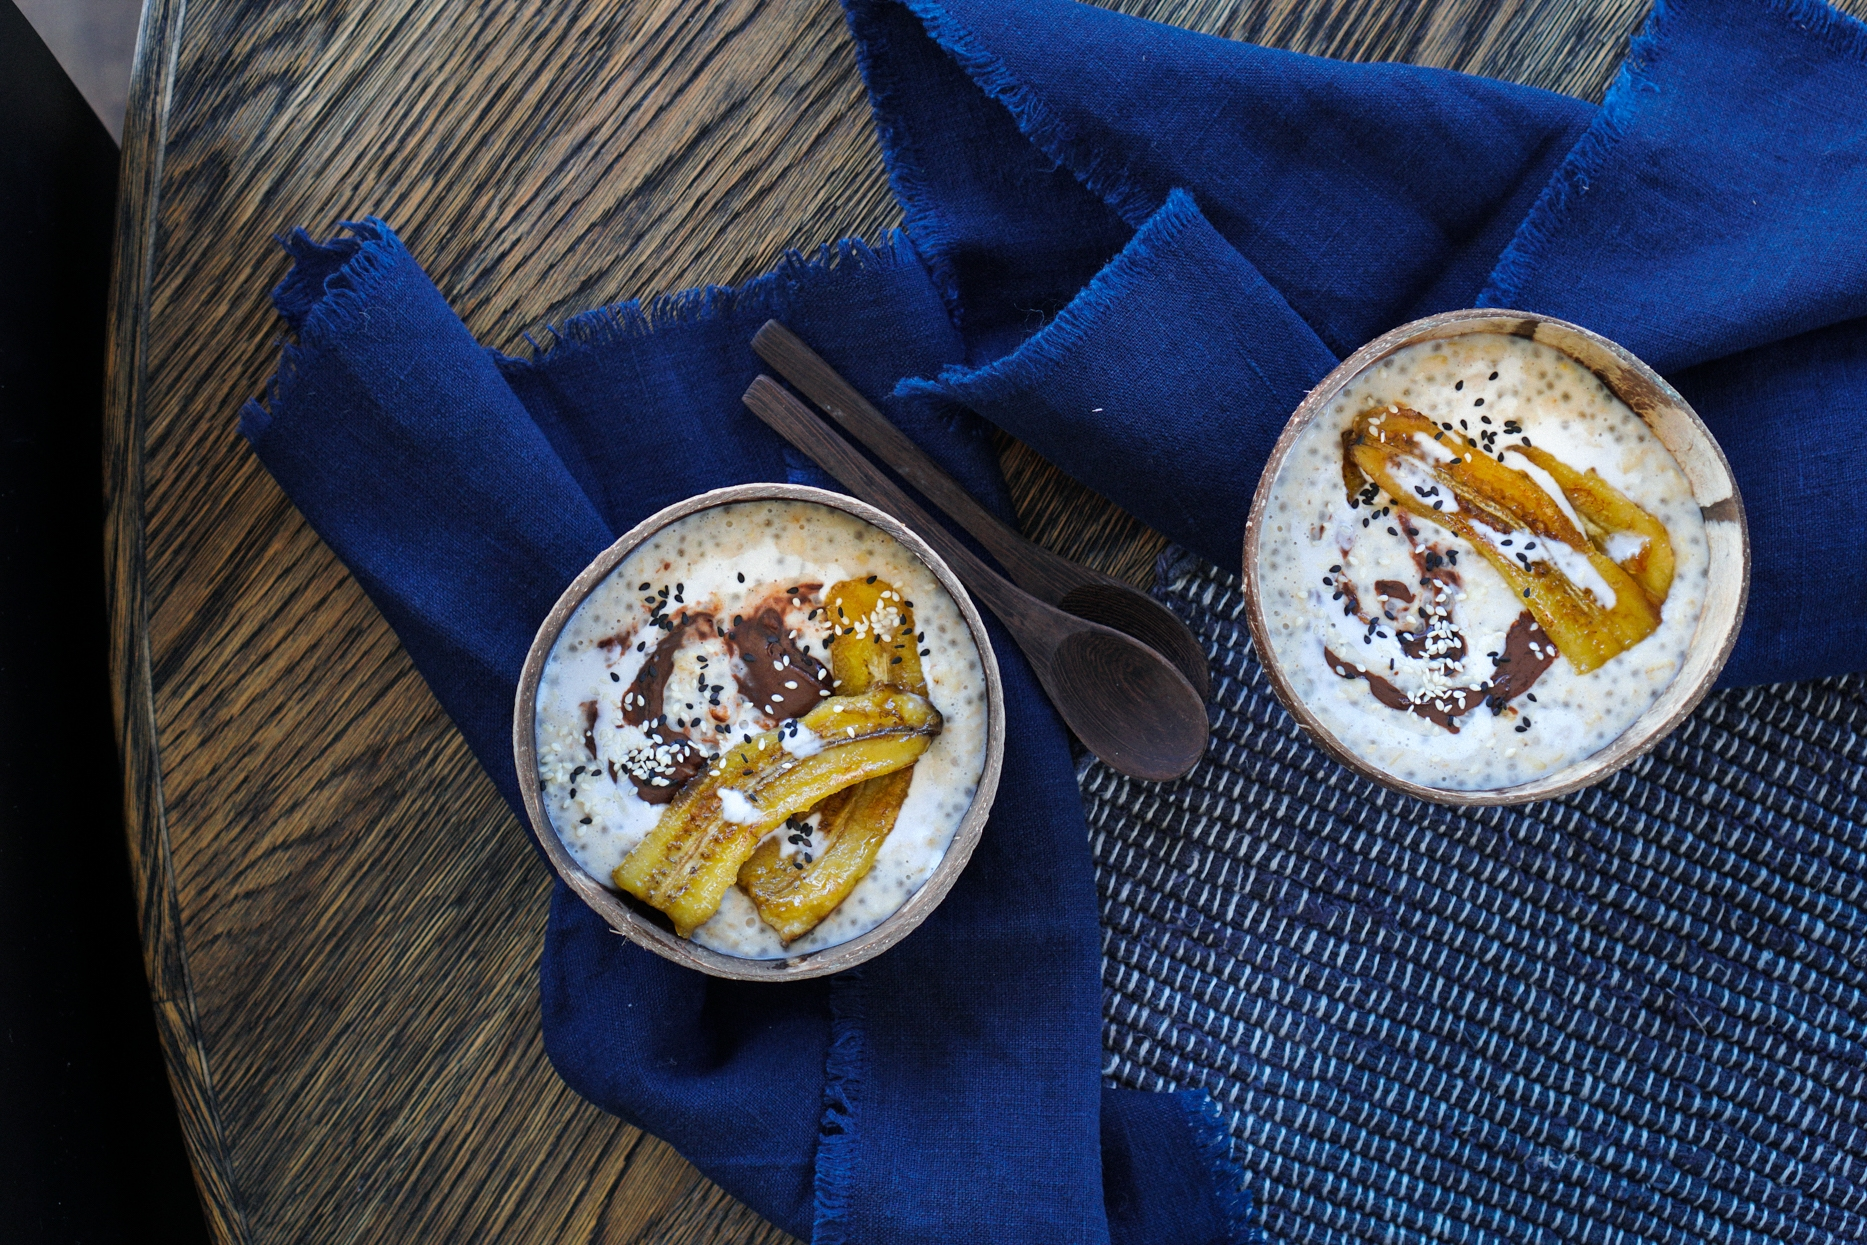 caramelized_banana_and_chocolate_tahini_oatmeal_with_chia-2.jpg